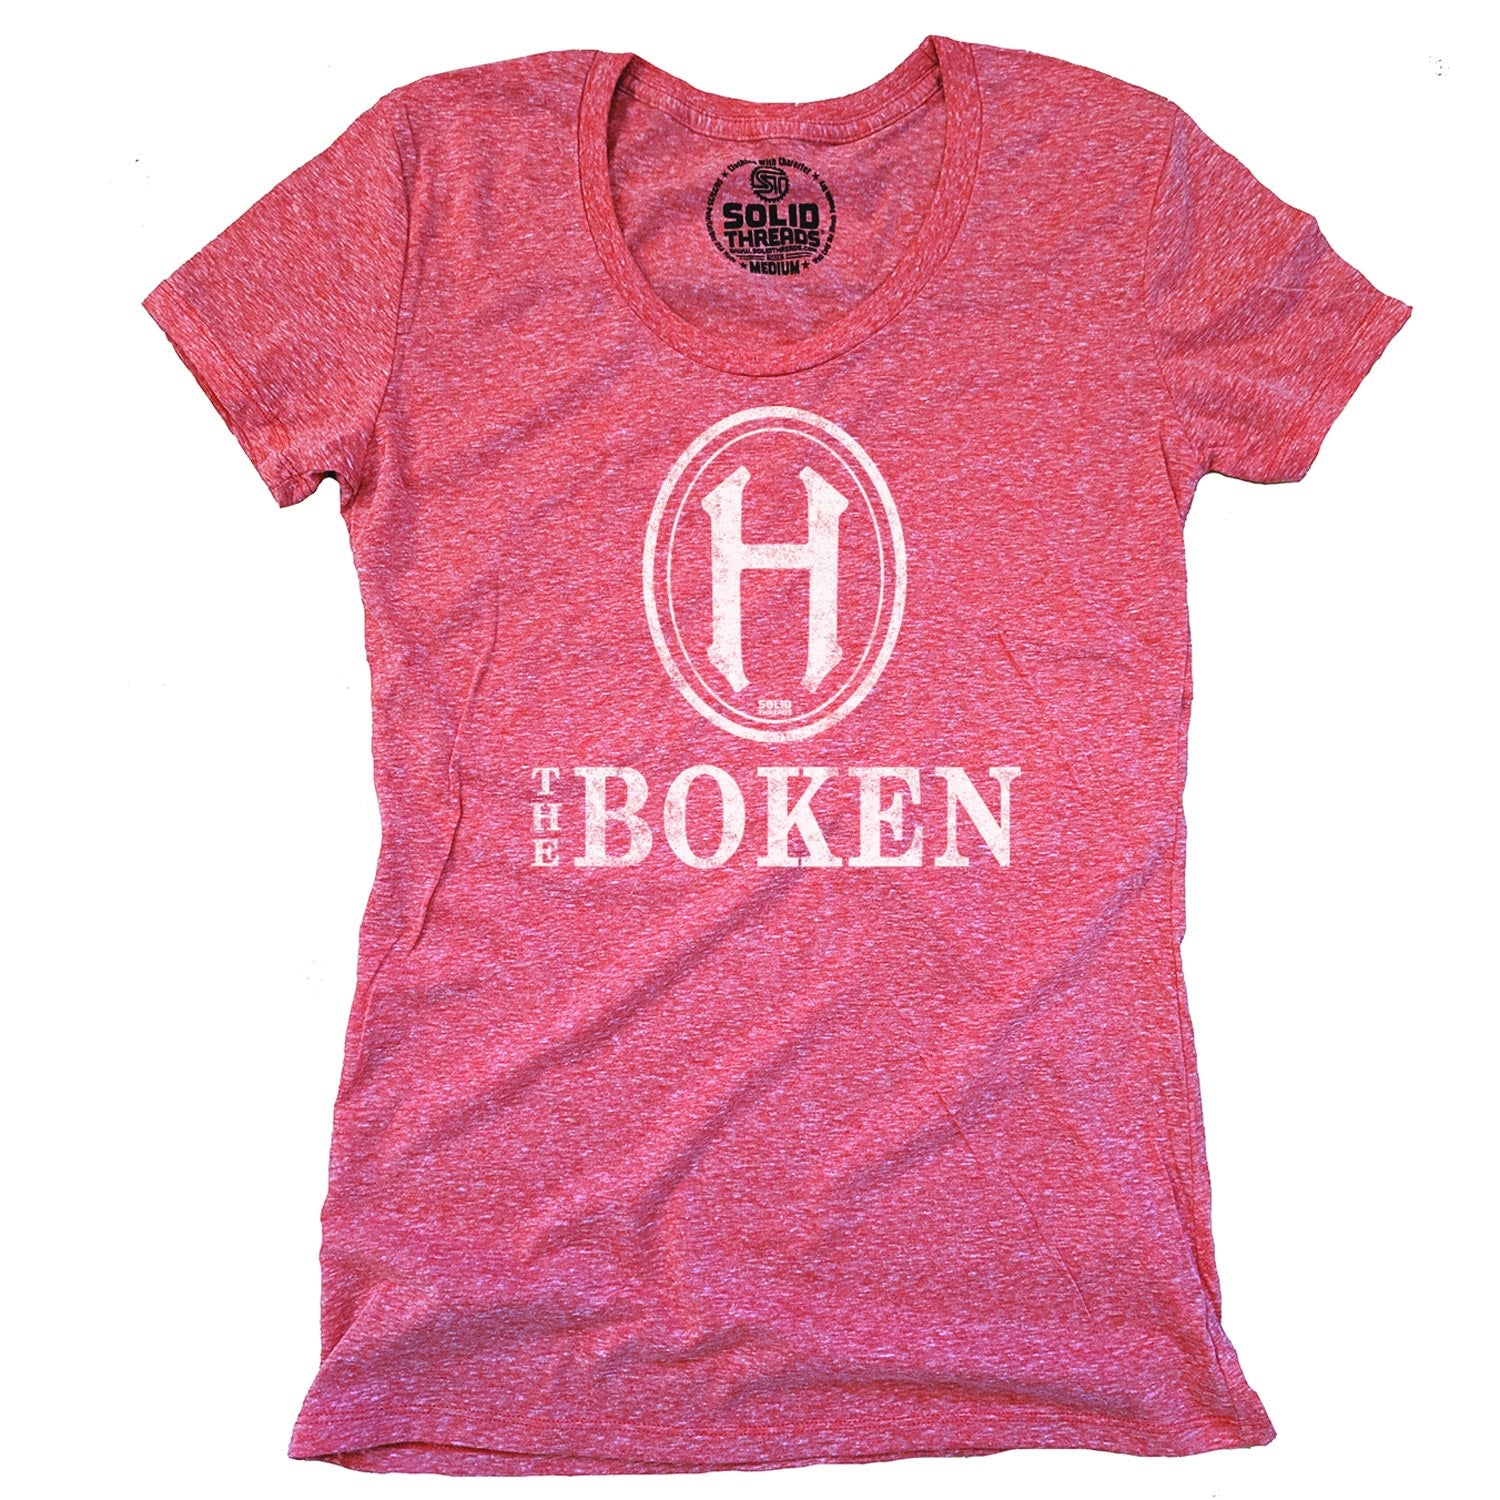 Women's The Boken Vintage T-shirt | SOLID THREADS